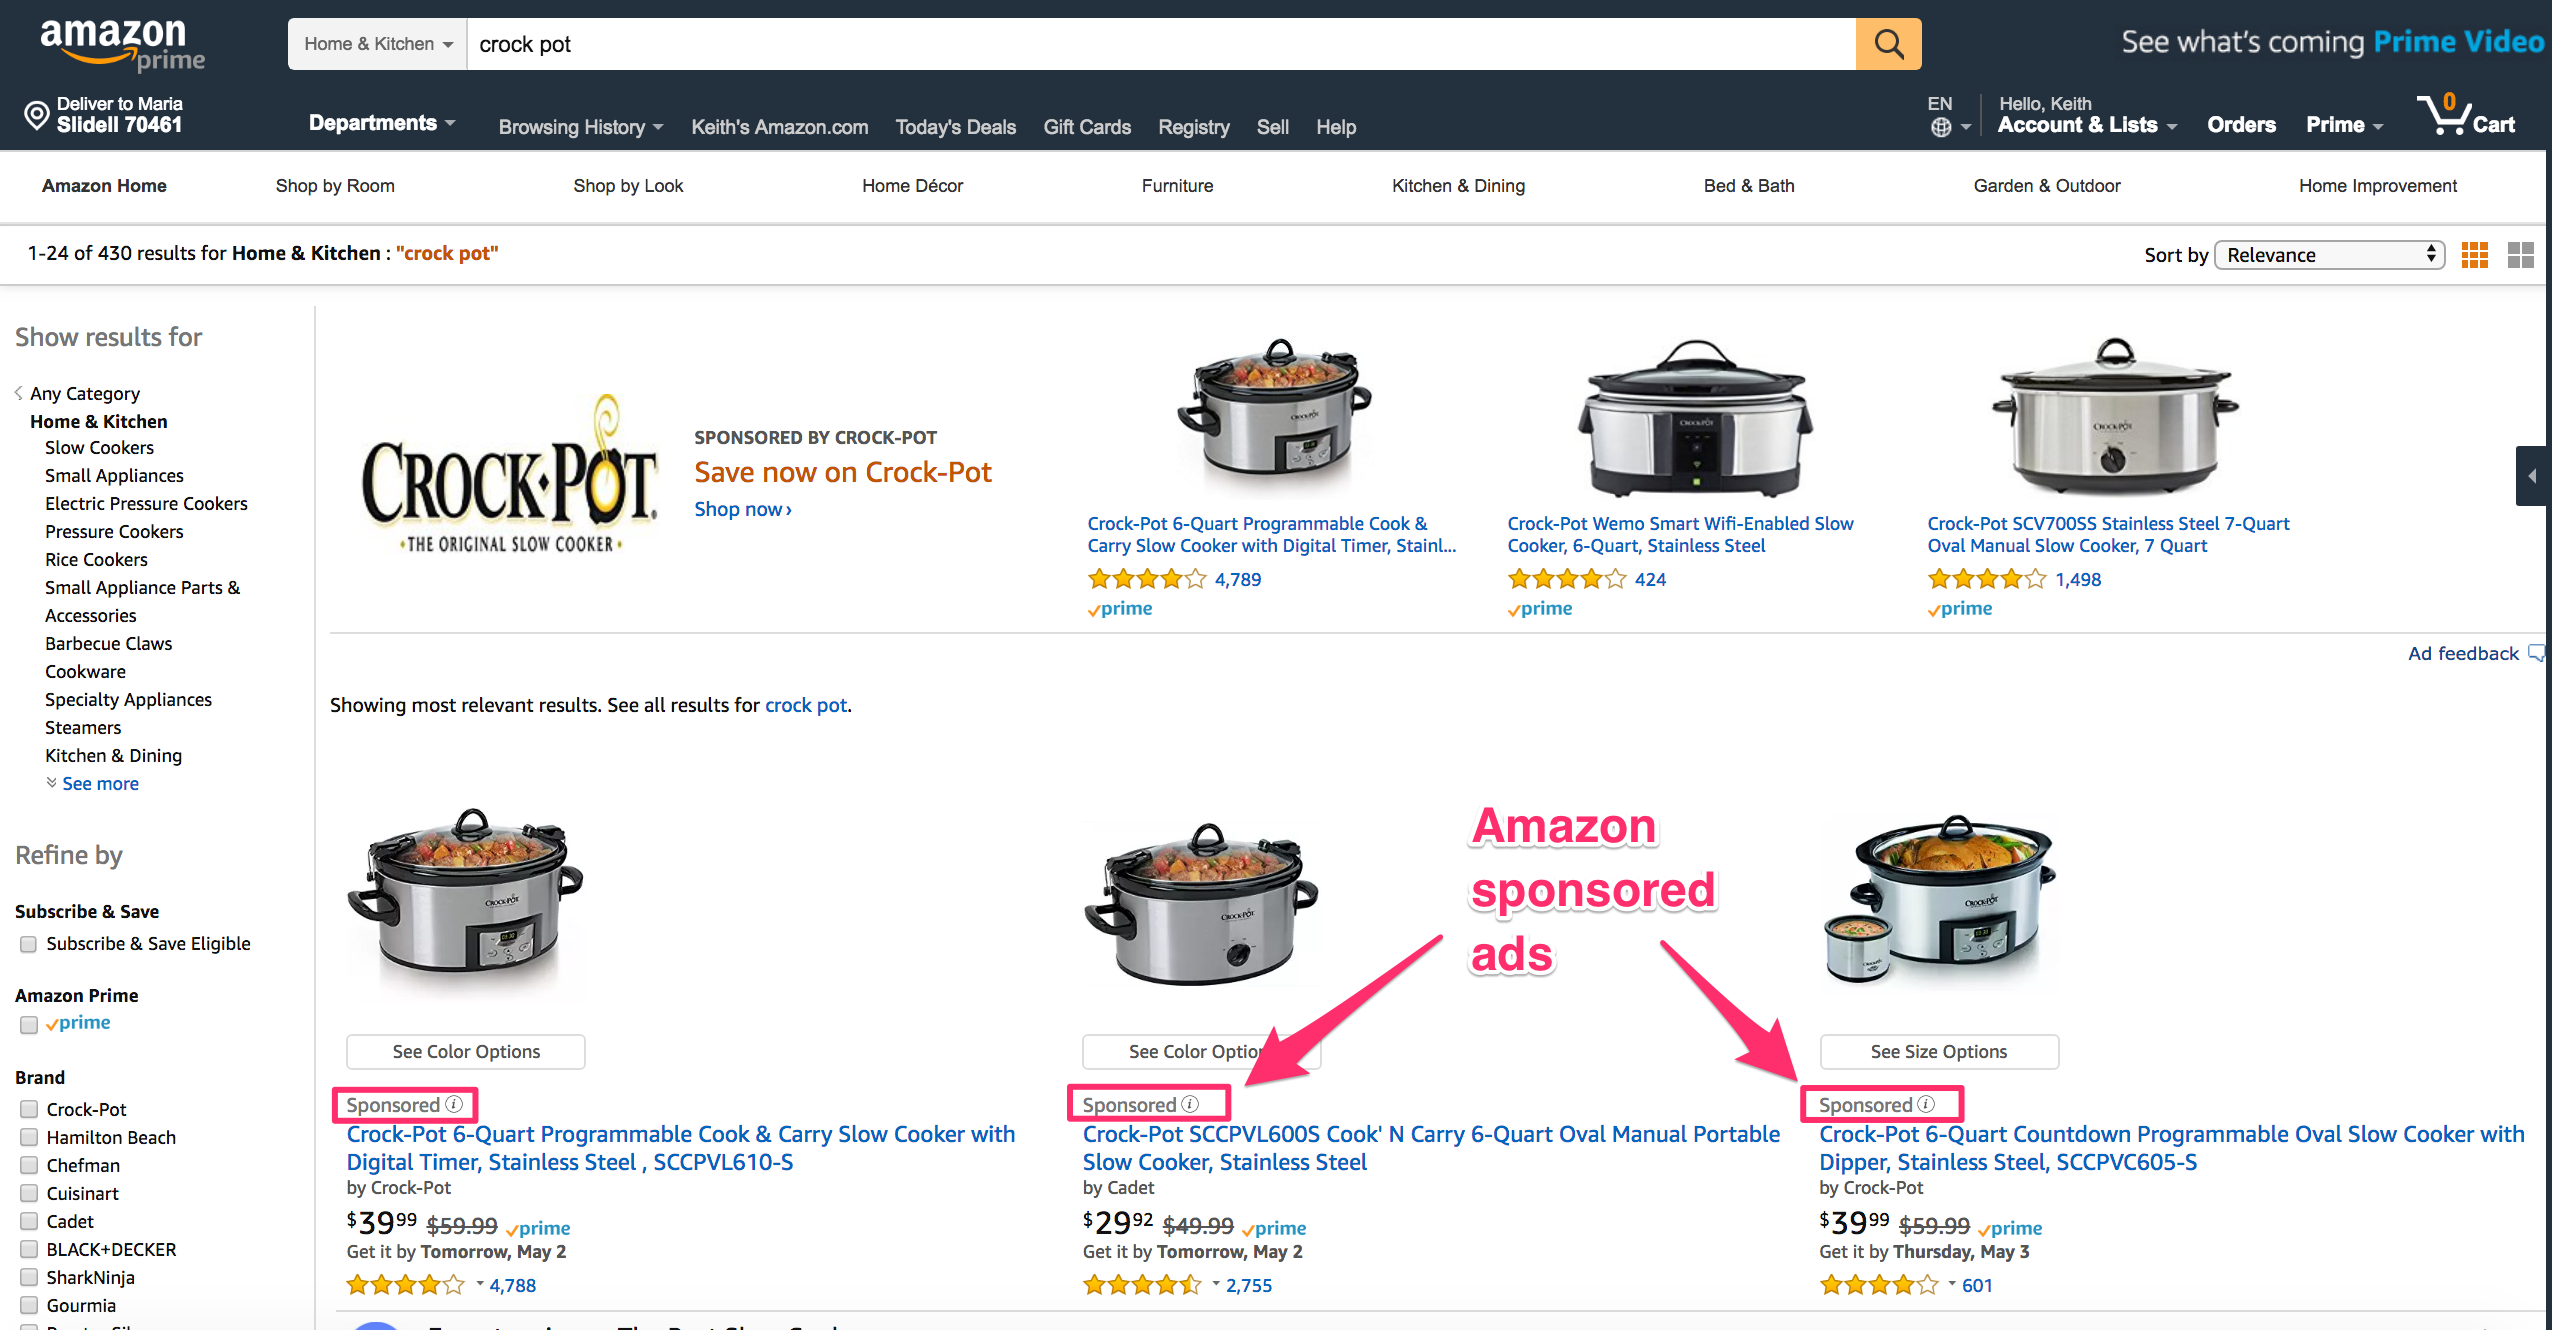 9 Ways to Promote Your Amazon Listings and Sell More